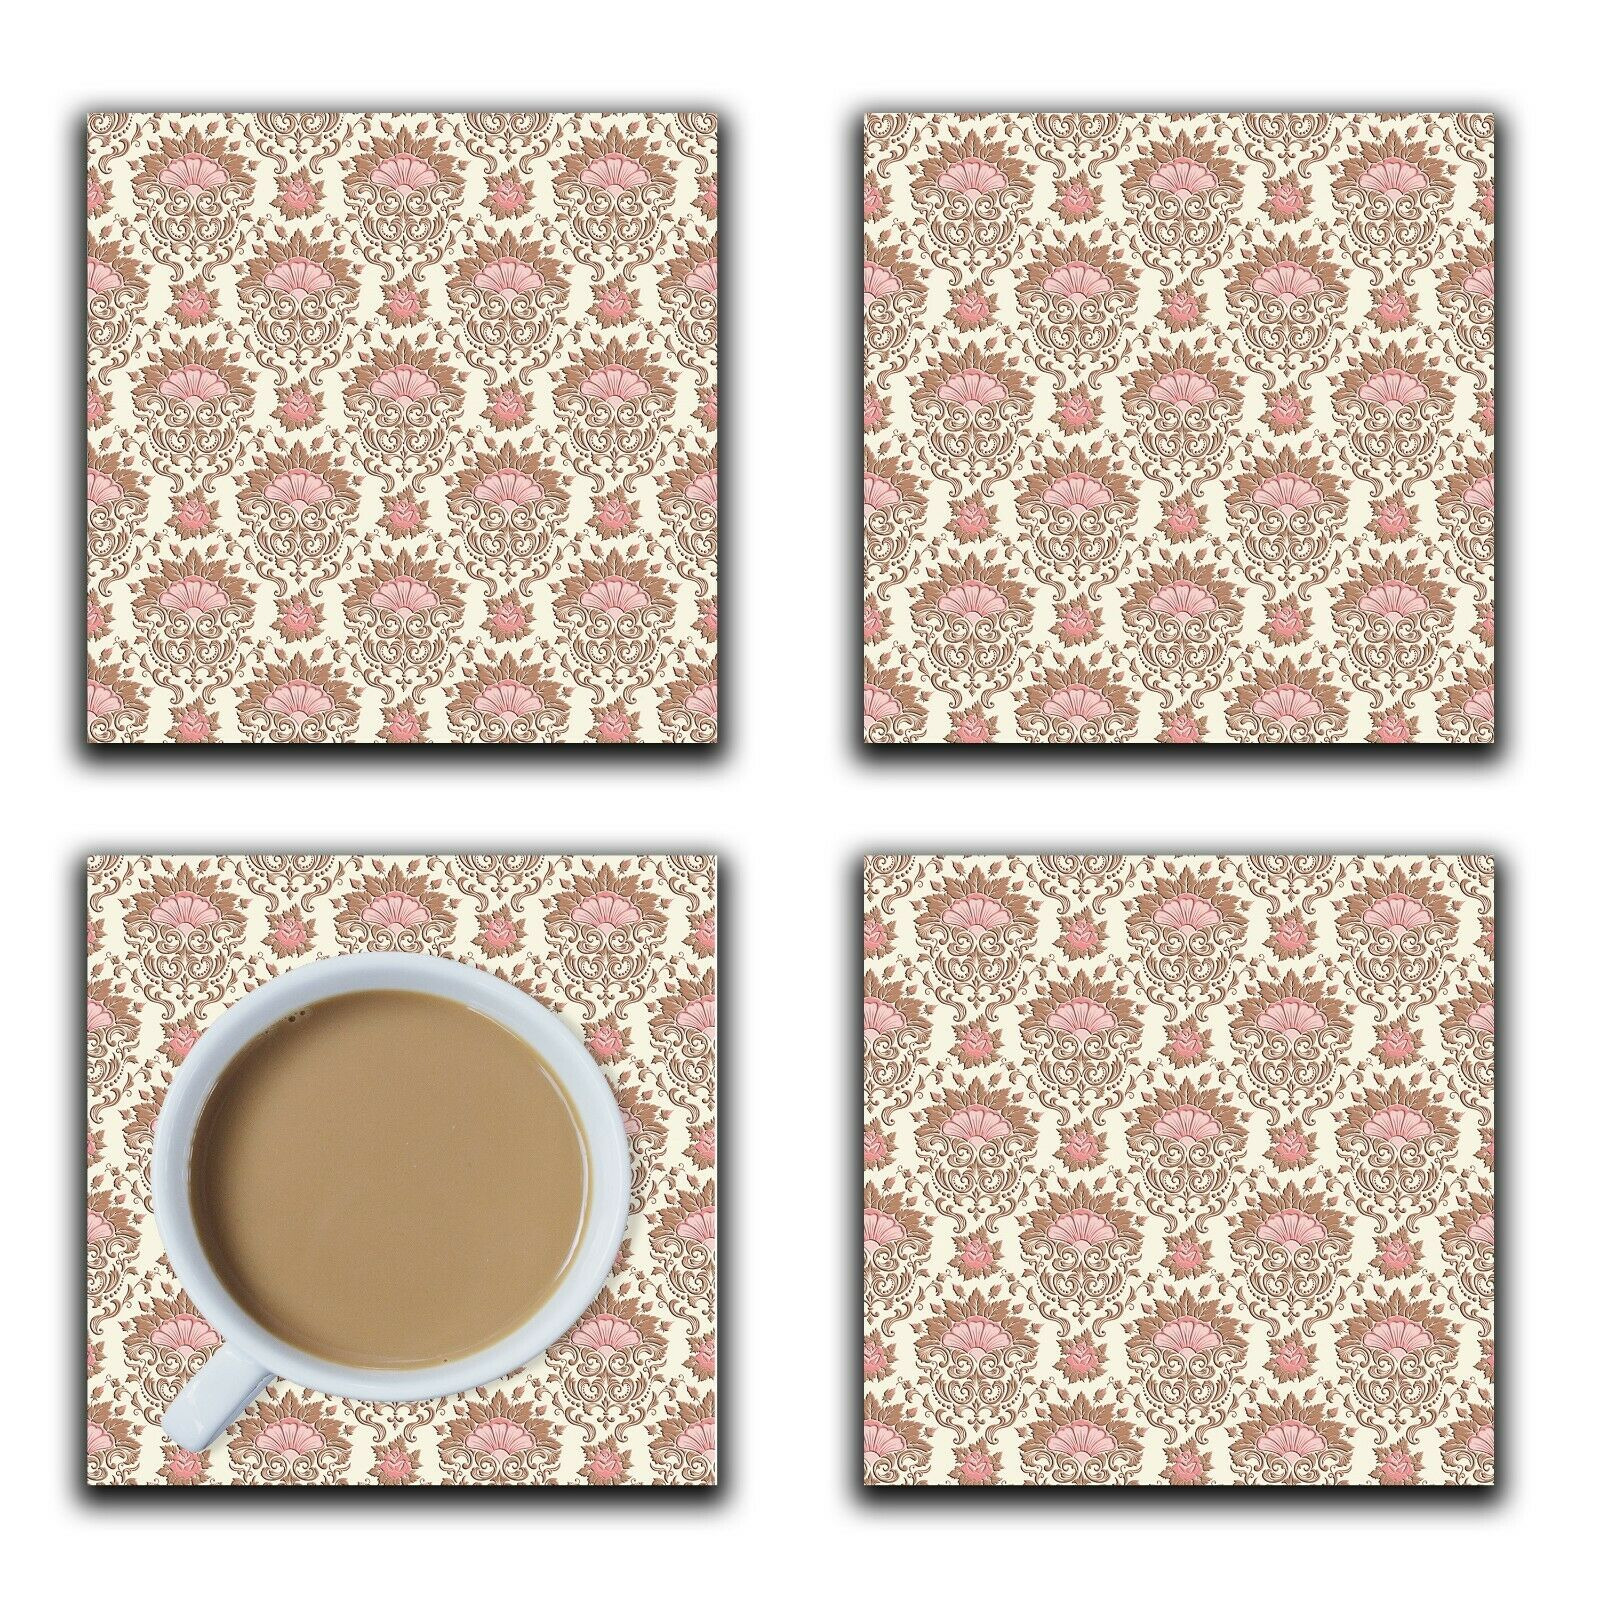 Embossi Printed Rose Damask, wood or ceramic tile, set of 4 Coasters